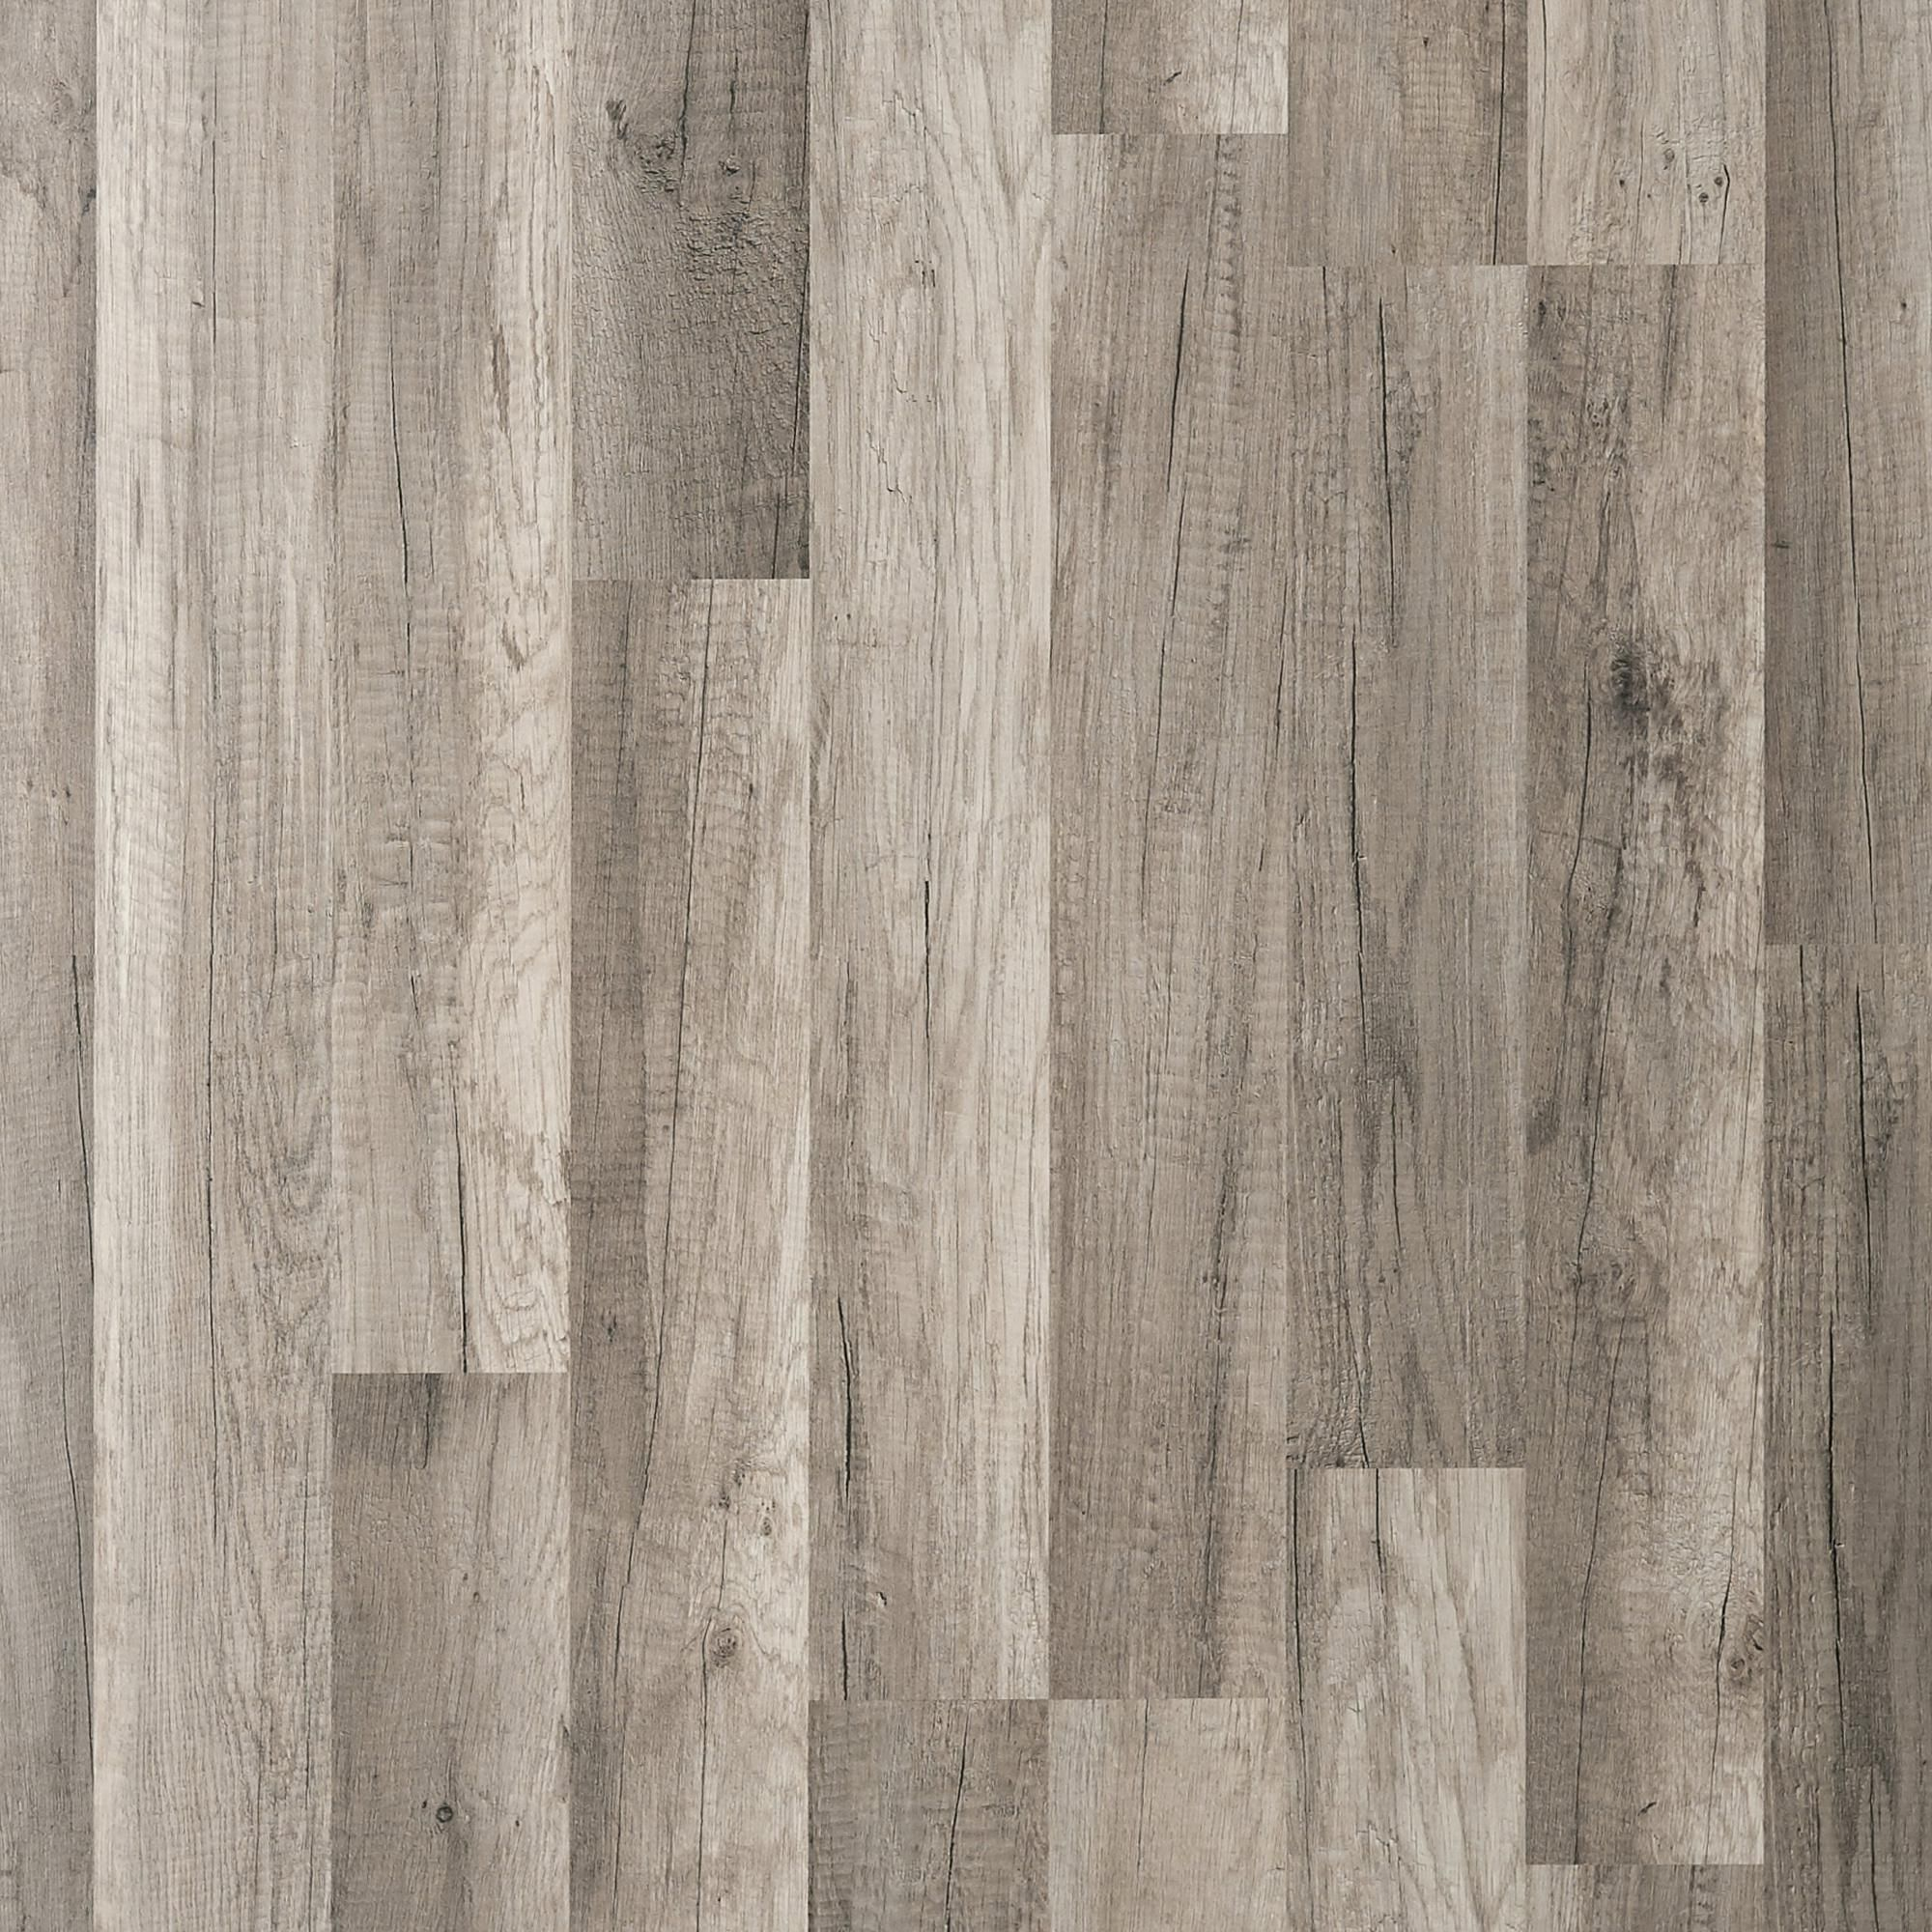 Bartley Pine Laminate  7Mm  944101346 - Floor And